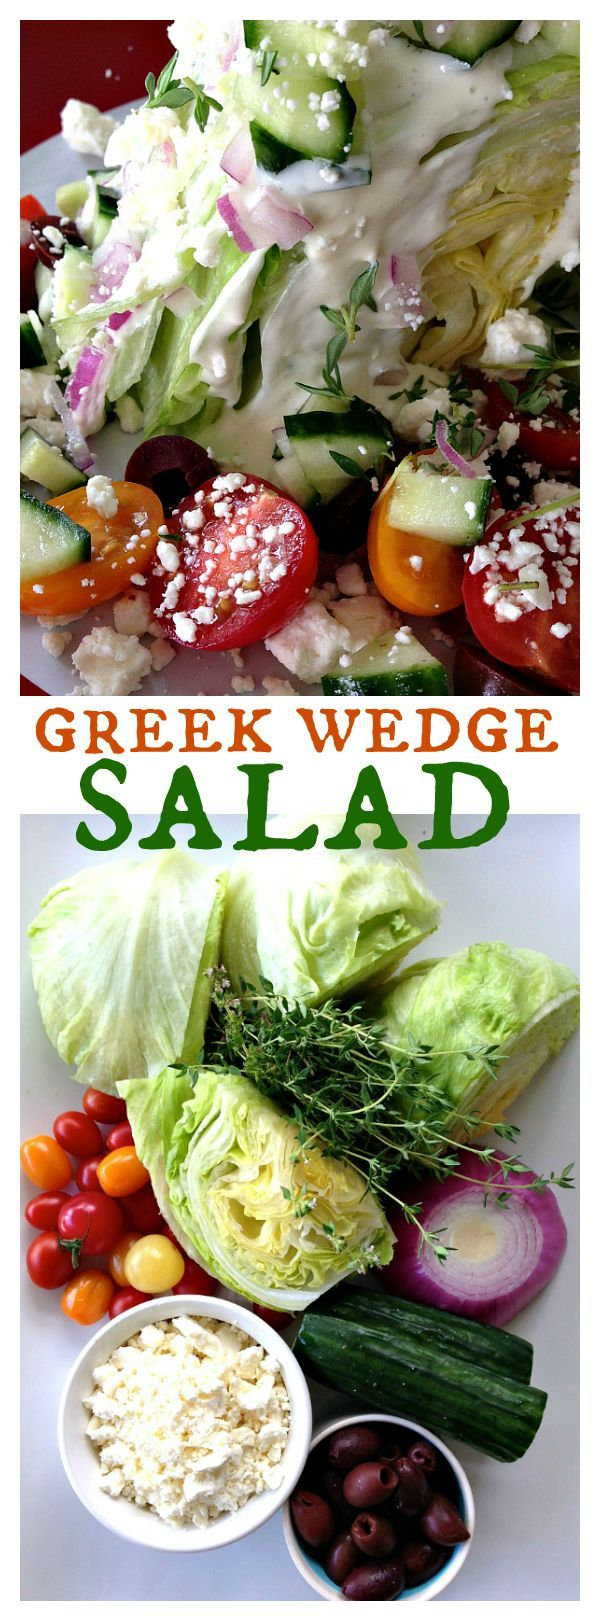 Healthy Greek Wedge Salad for salad bar potluck!